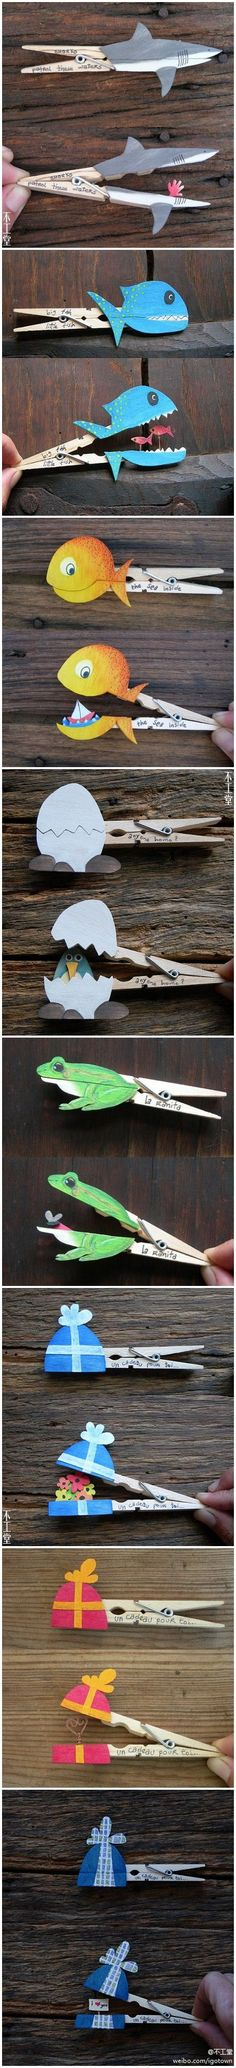 funny craft - Click image to find more DIY & Crafts Pinterest pins